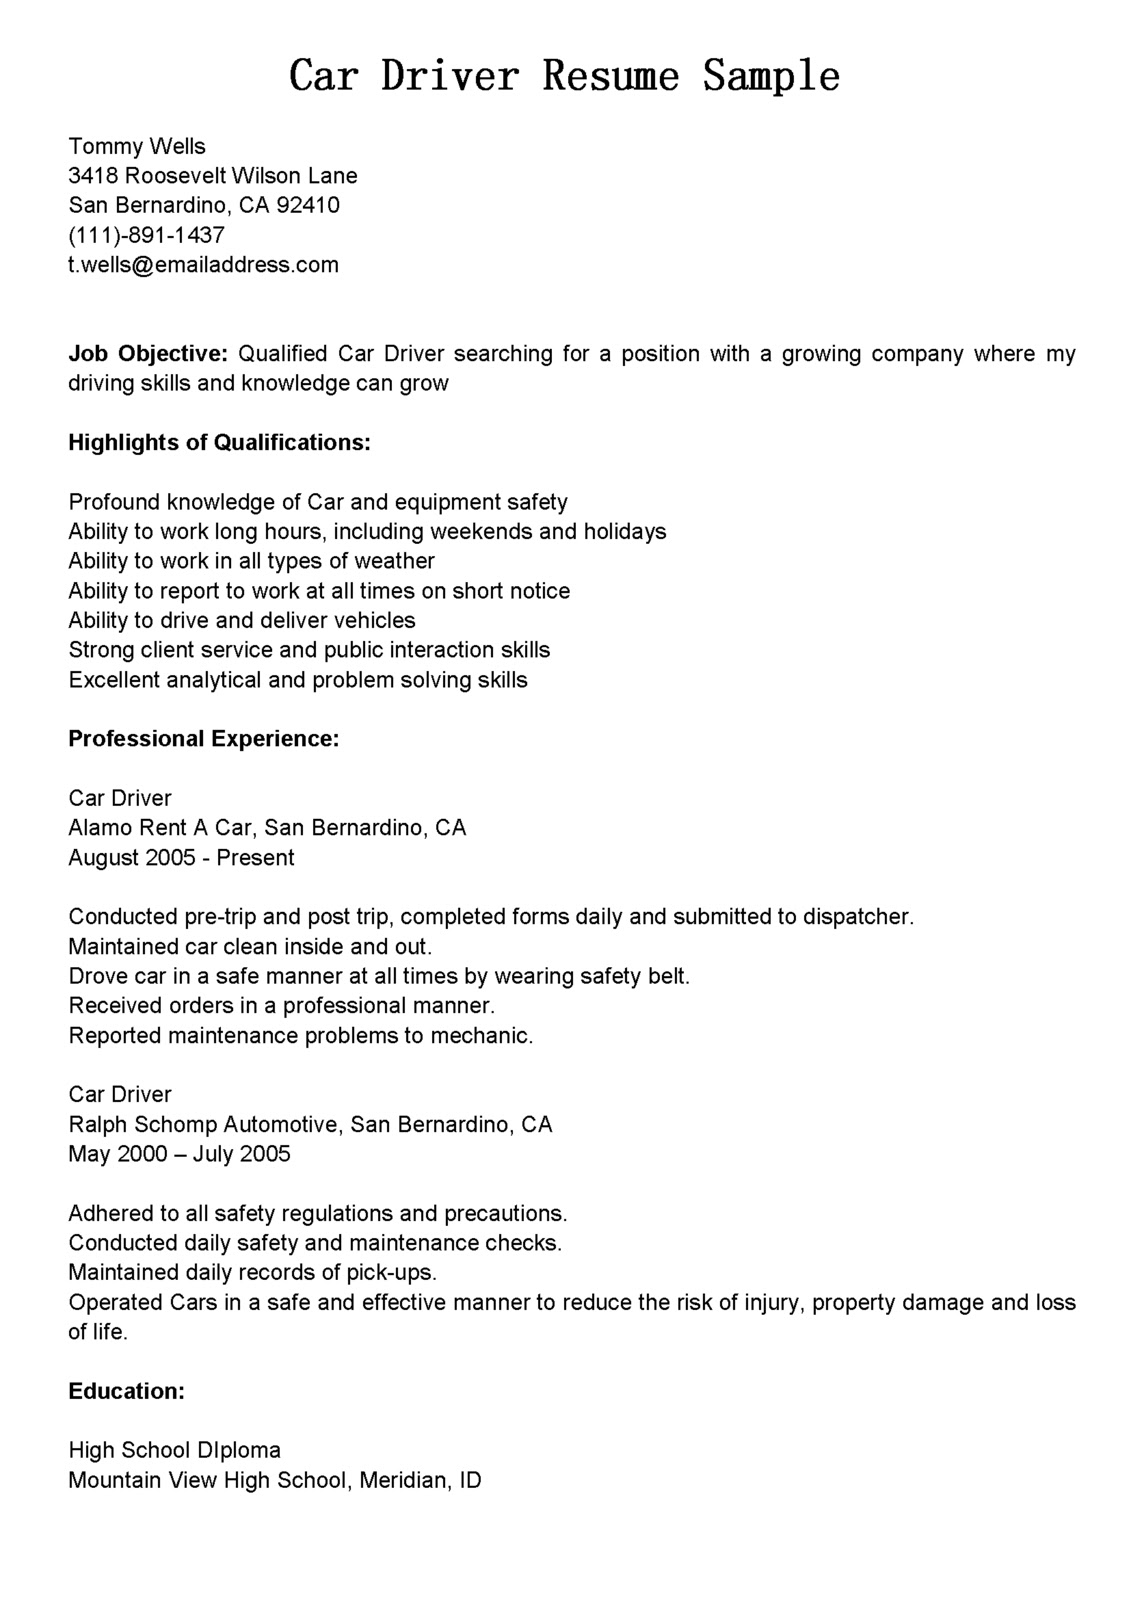 resume Truck Driver Description For Resume strategy to drive victorias health and medical research premier the information helpful in drafting a job winning dispatcher resume